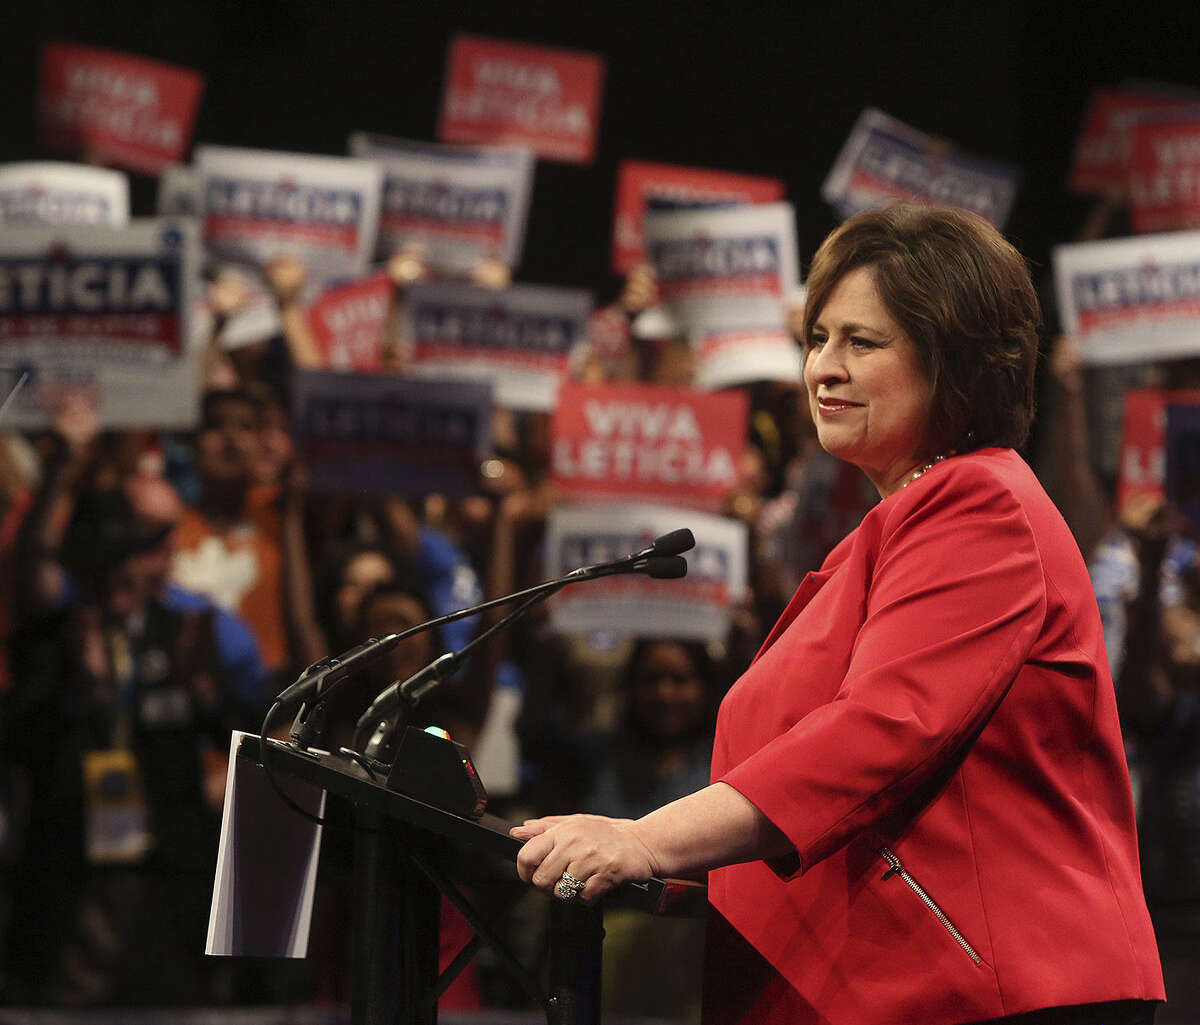 The Demo- cratic can- didate for lieutenant governor, state Sen. Leticia Van de Putte, is launching her first two TV ads of the election this weekend.